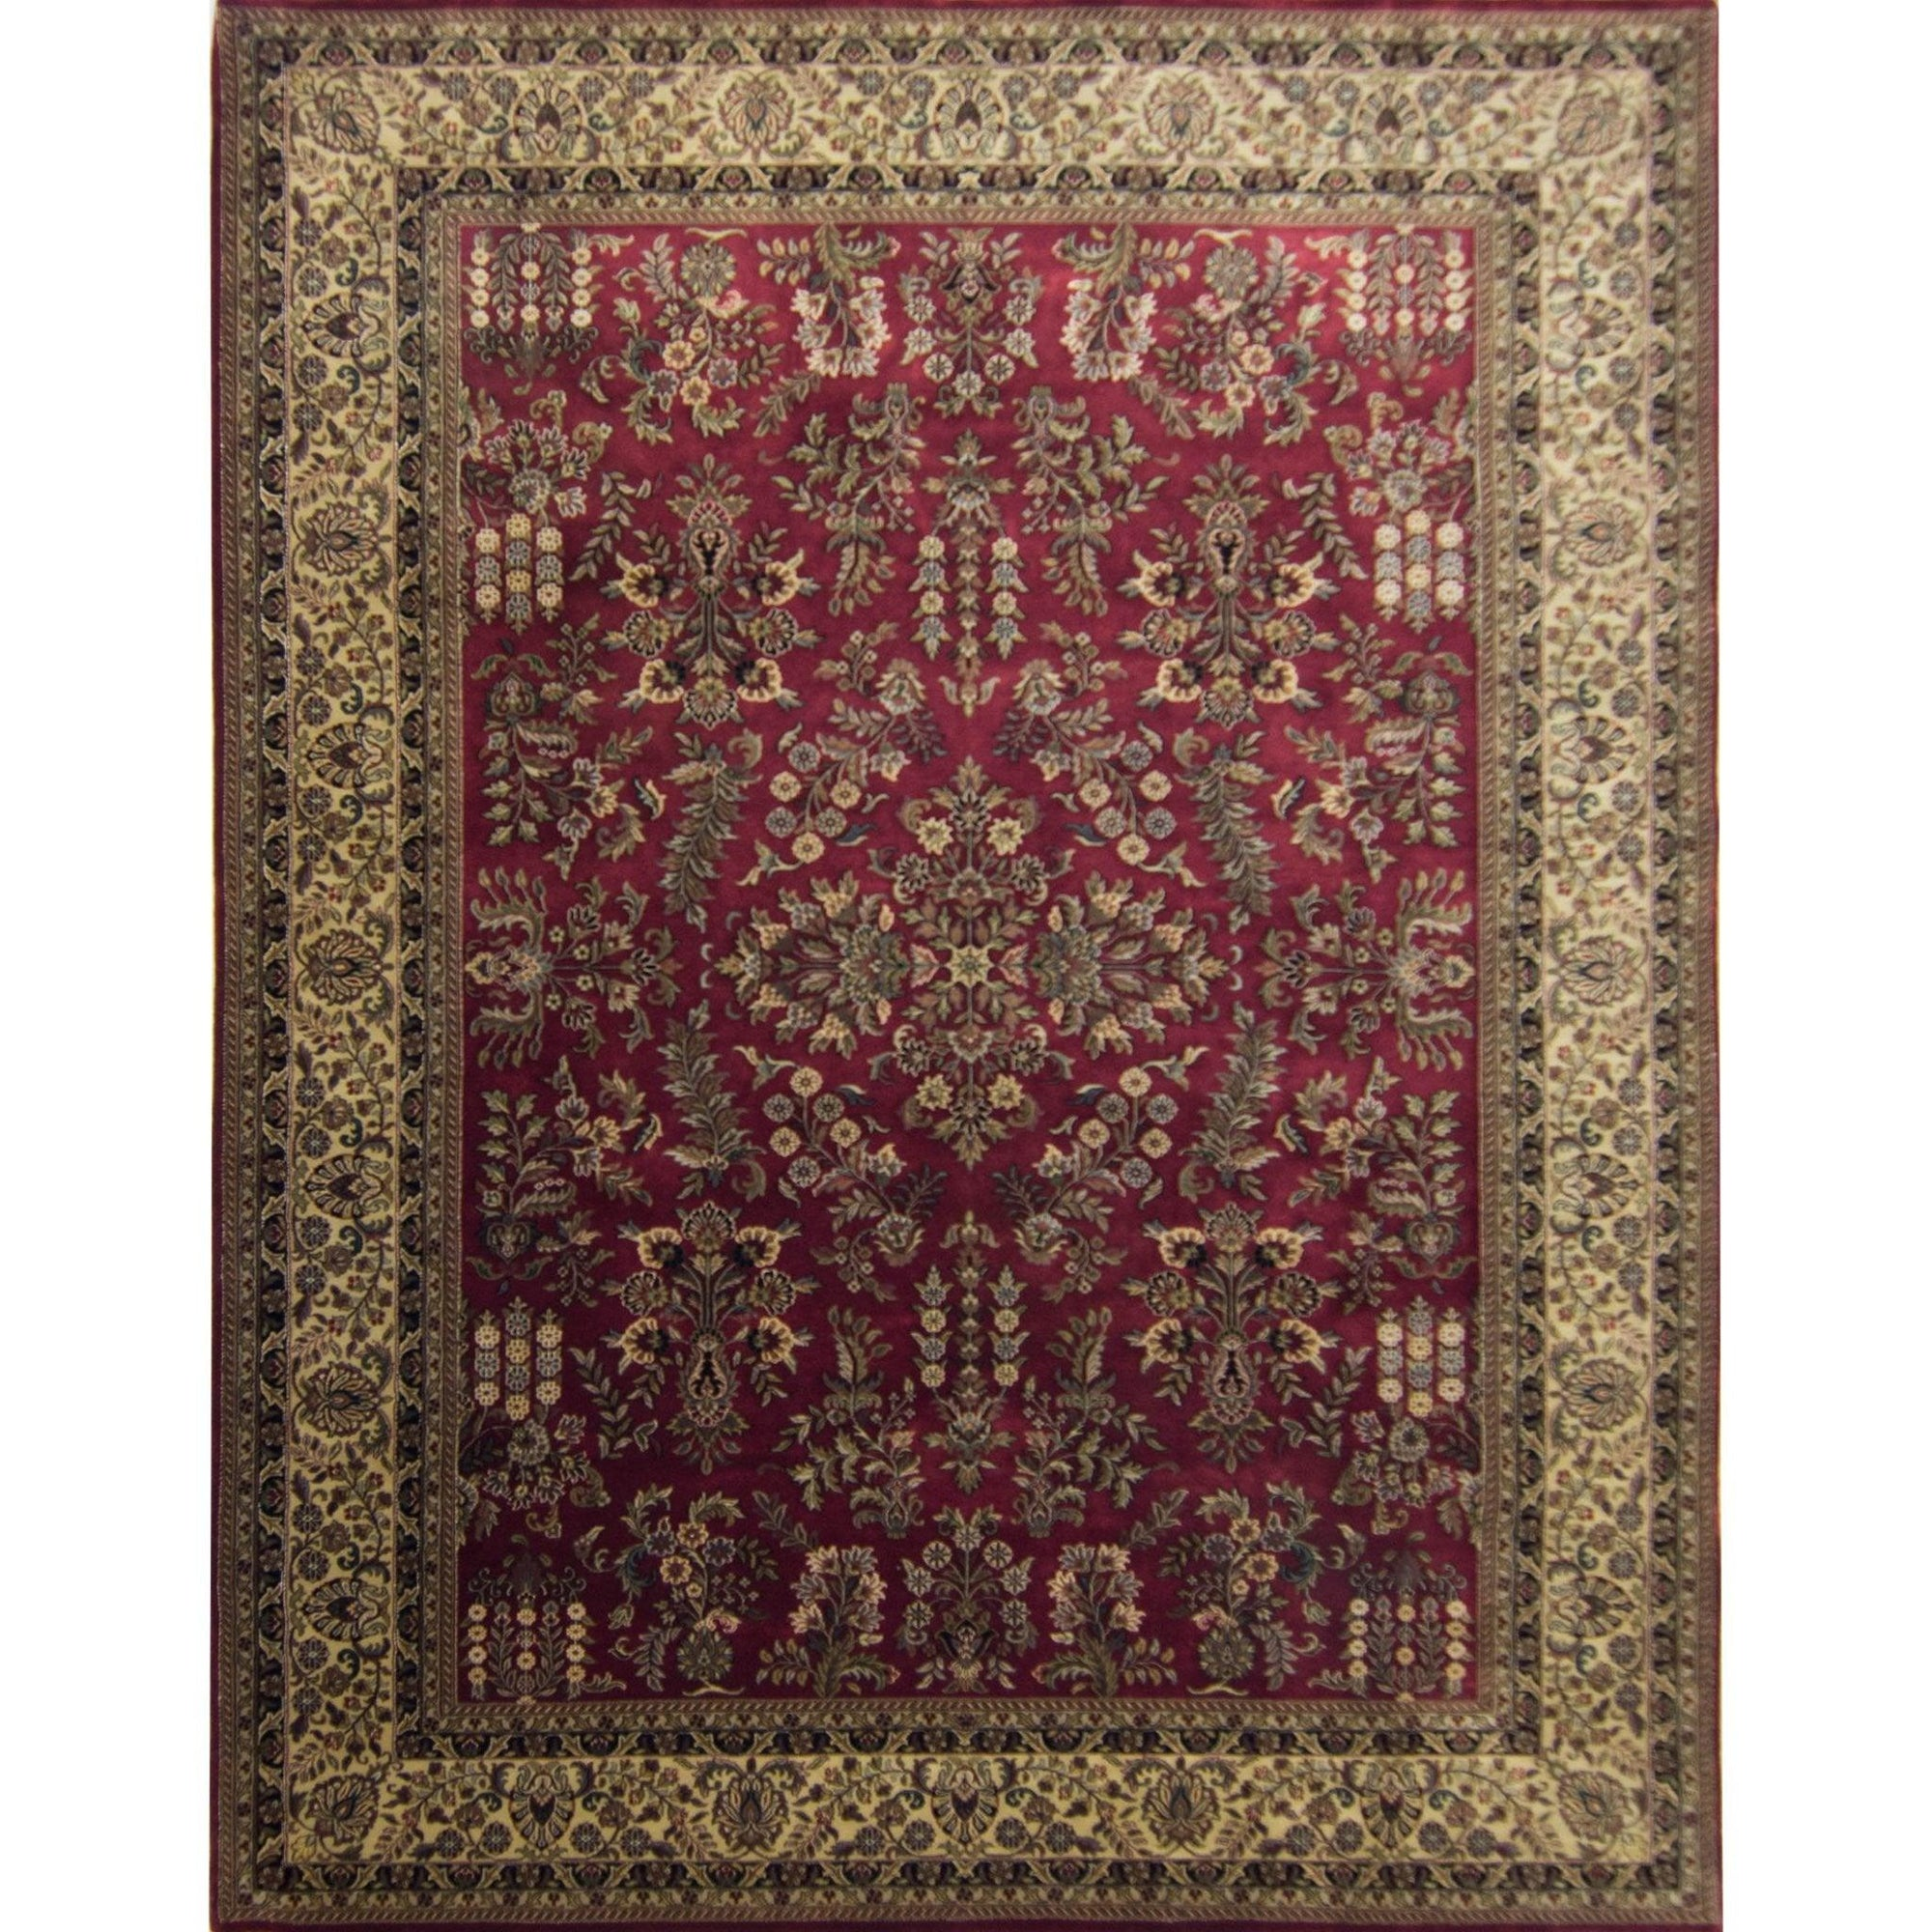 Fine Persian Saruk Rug 277cm x 366cm Persian-Rug | House-of-Haghi | NewMarket | Auckland | NZ | Handmade Persian Rugs | Hand Knotted Persian Rugs